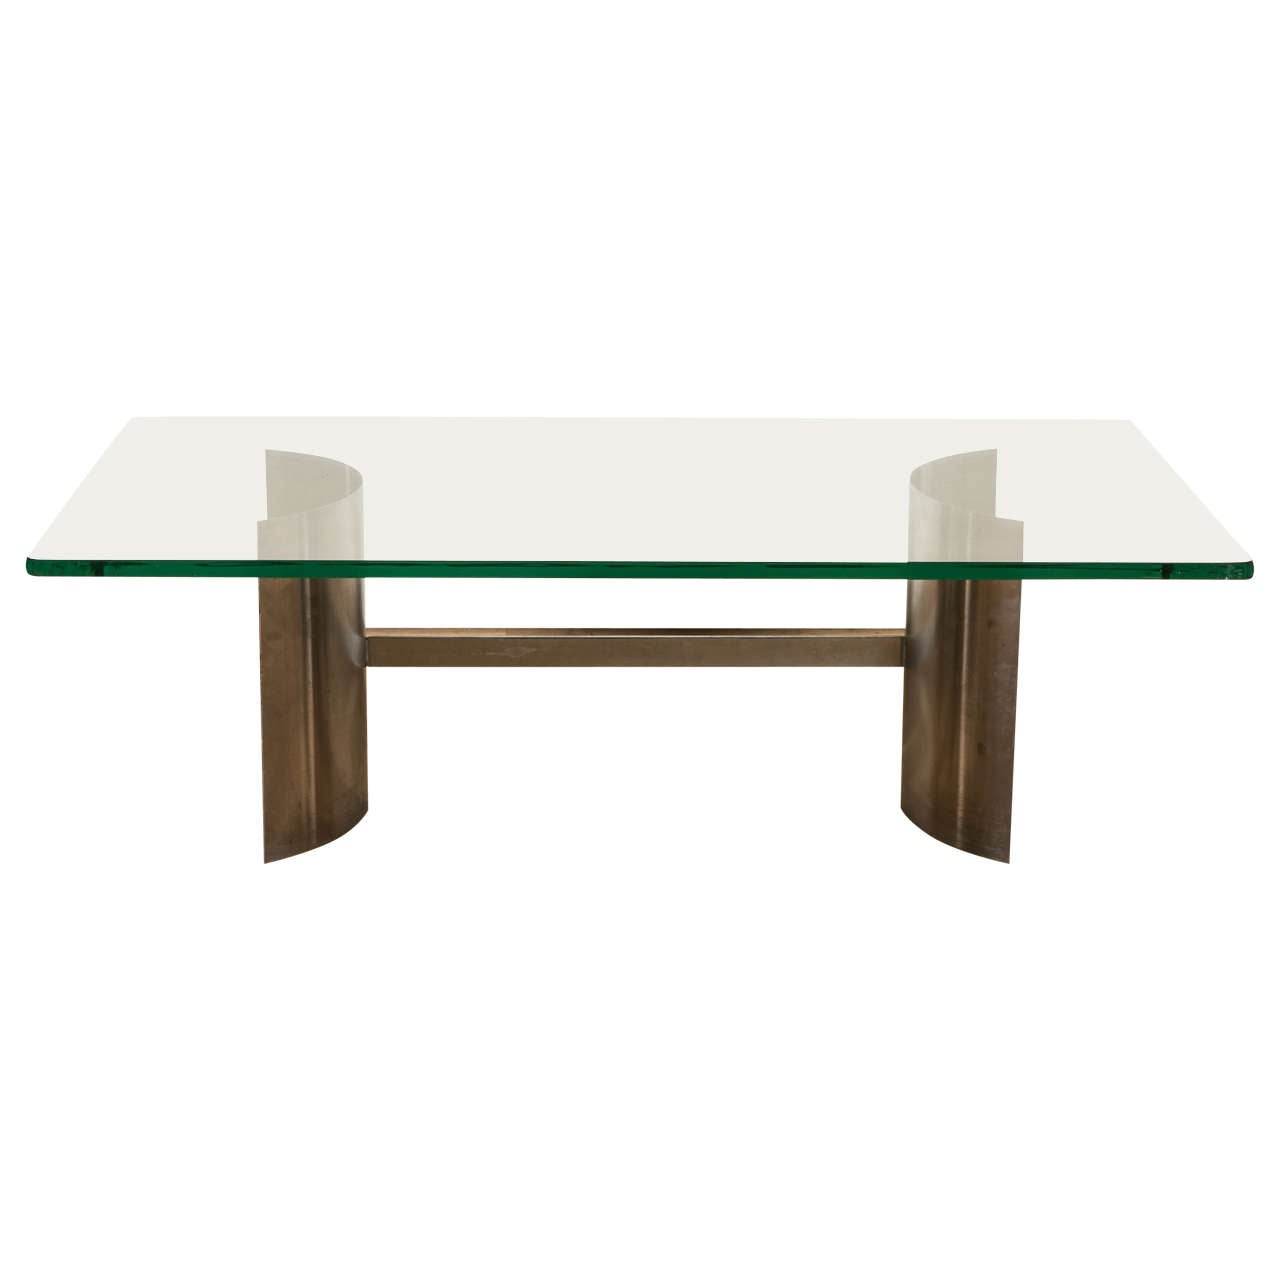 1970s Coffee Table Attributed to Francoise See For Sale